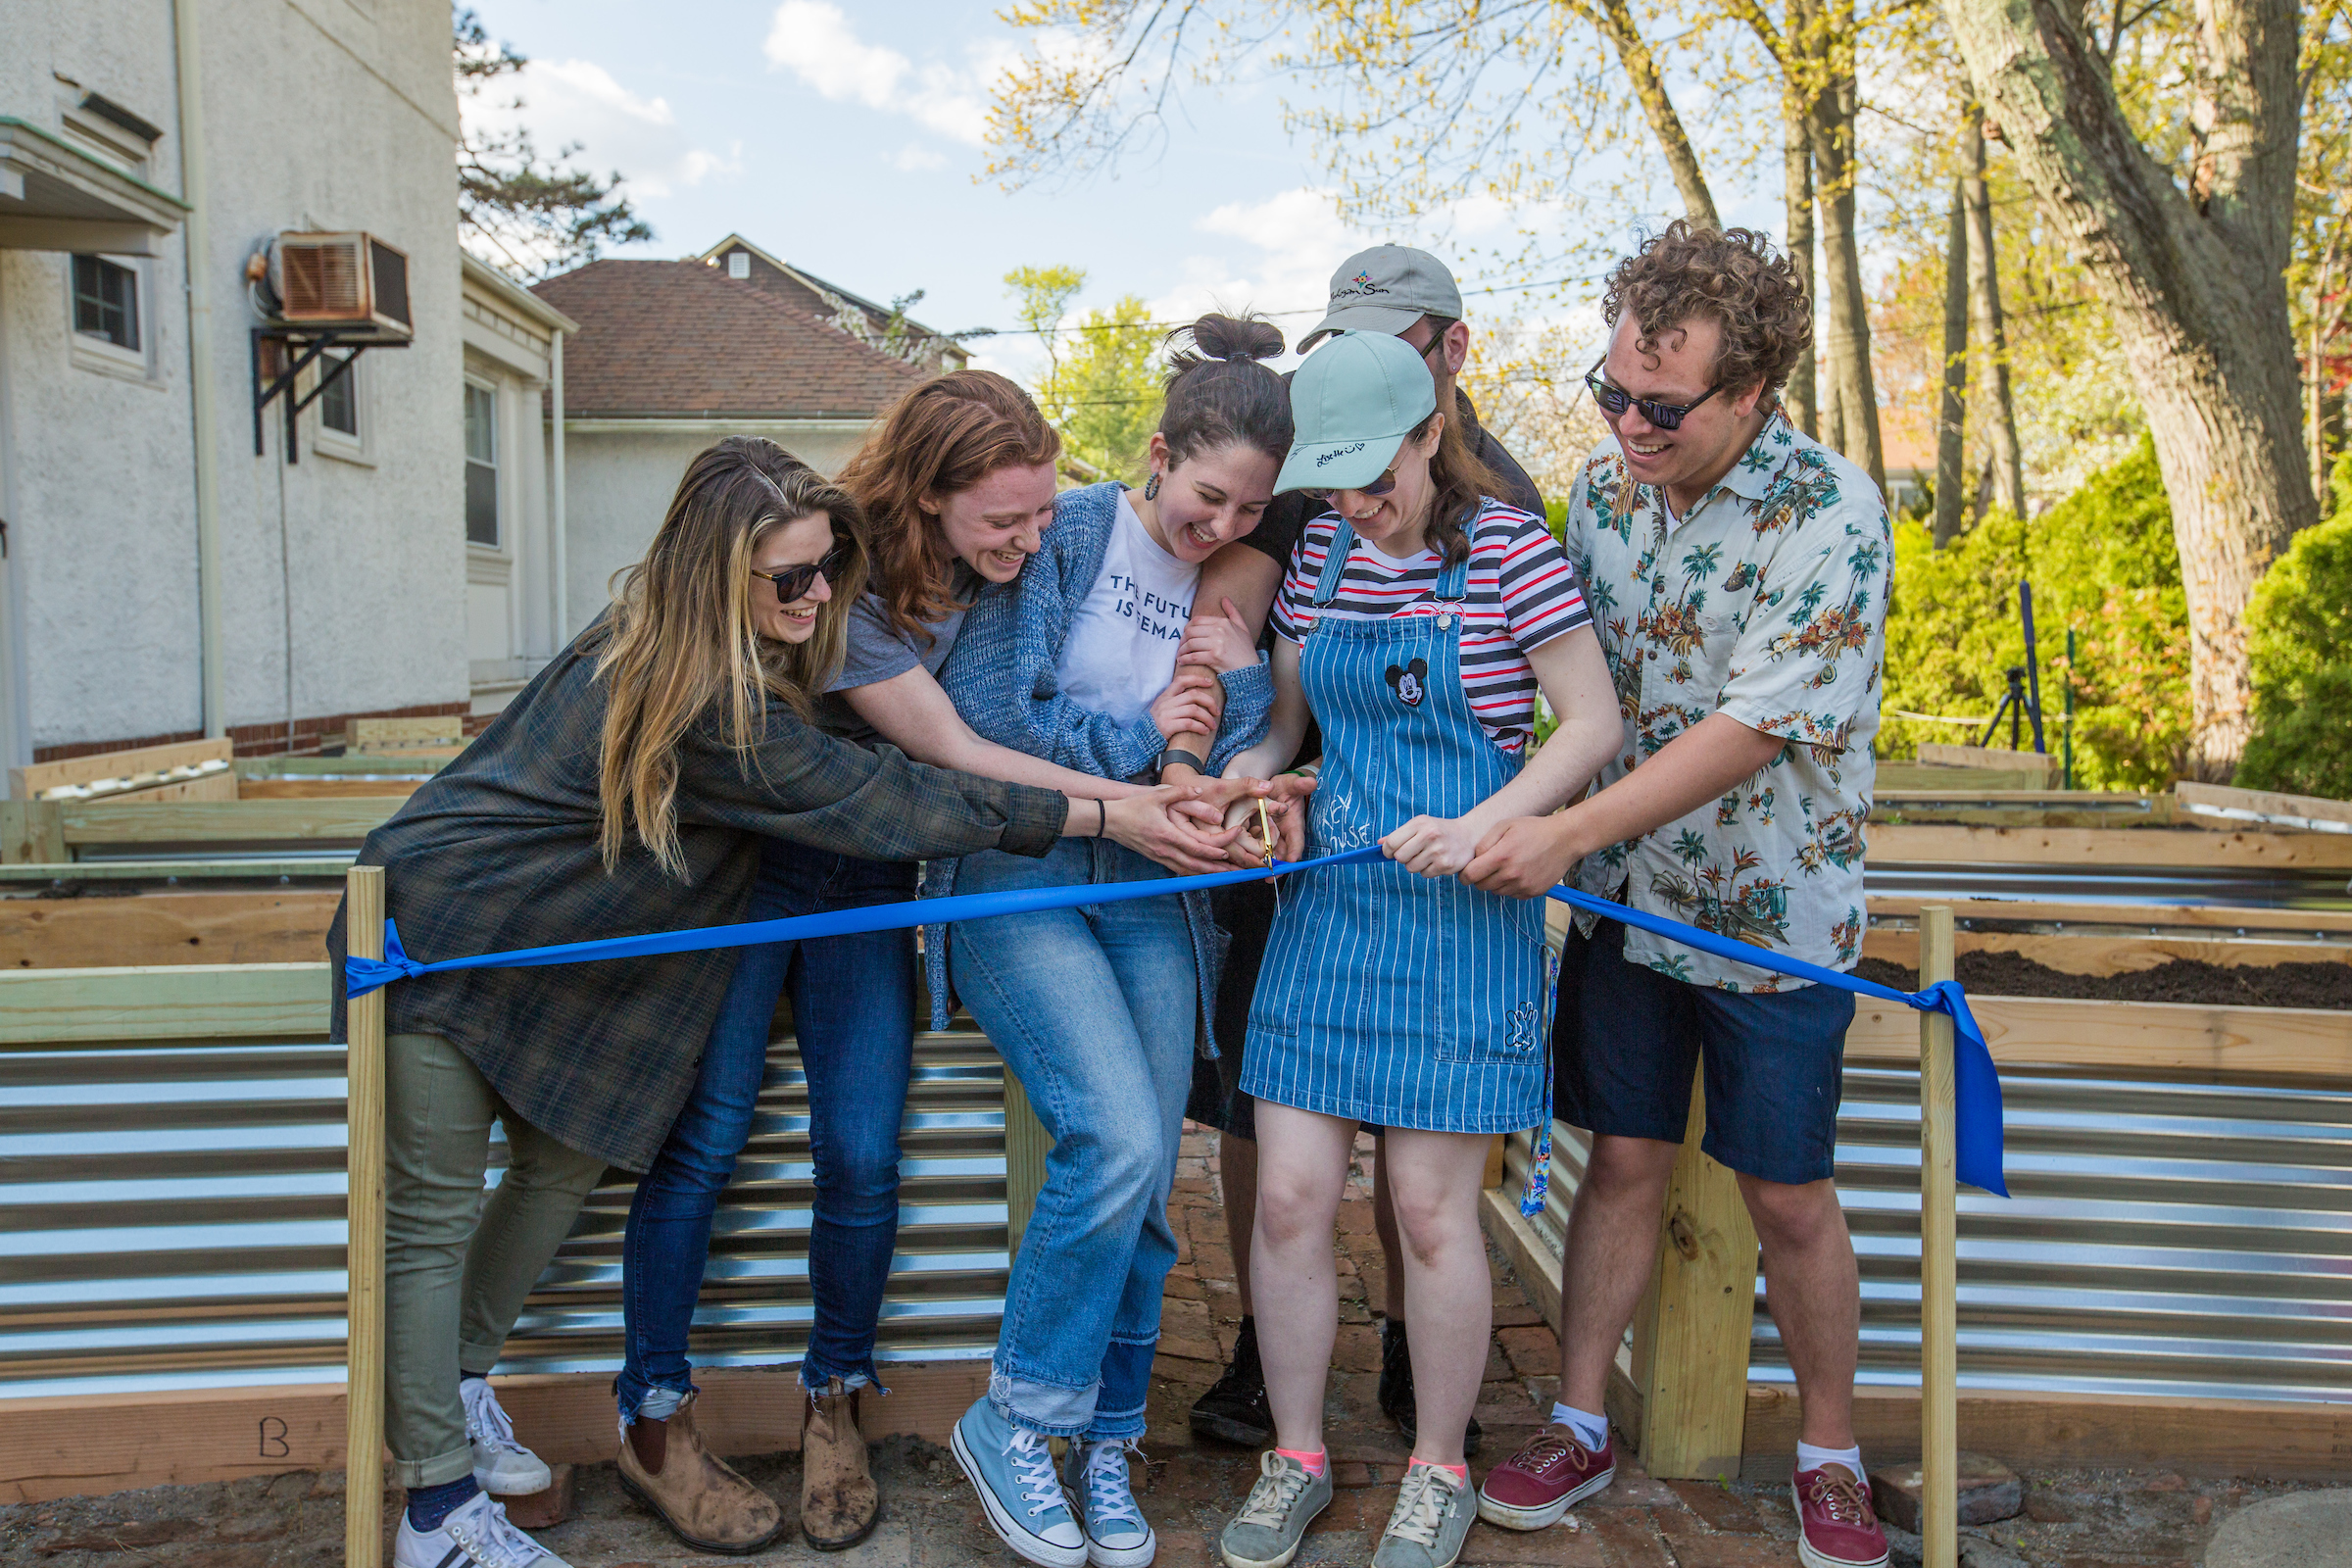 20190508_RaisedBedsRibbonCutting_5I0A7182.jpg